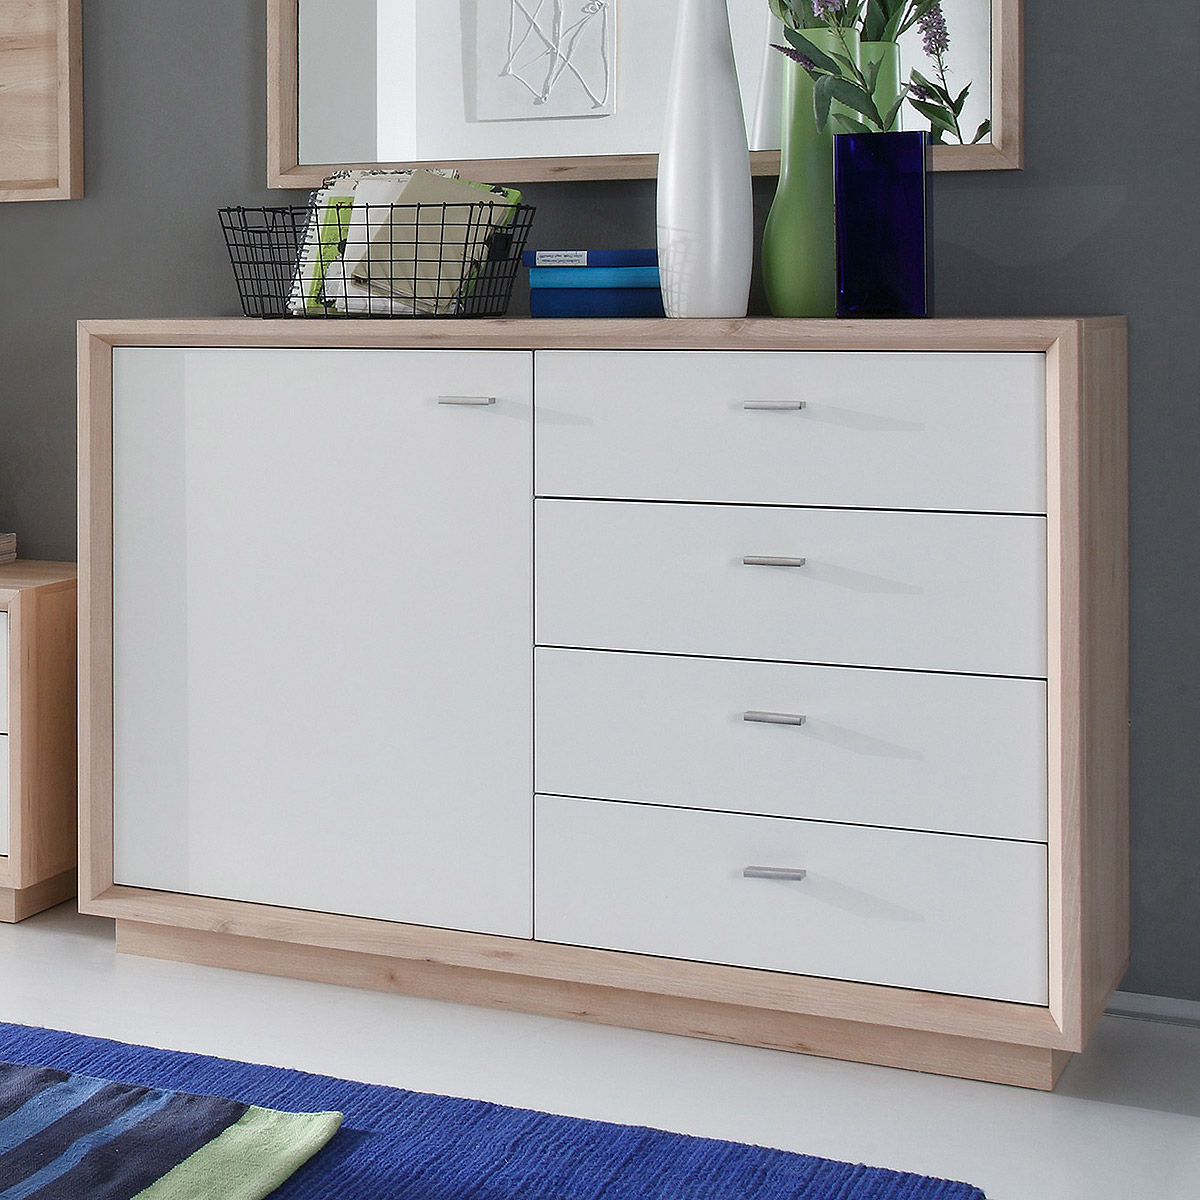 sideboard sven kommode garderobe in edelbuche und wei lack b 122 cm ebay. Black Bedroom Furniture Sets. Home Design Ideas